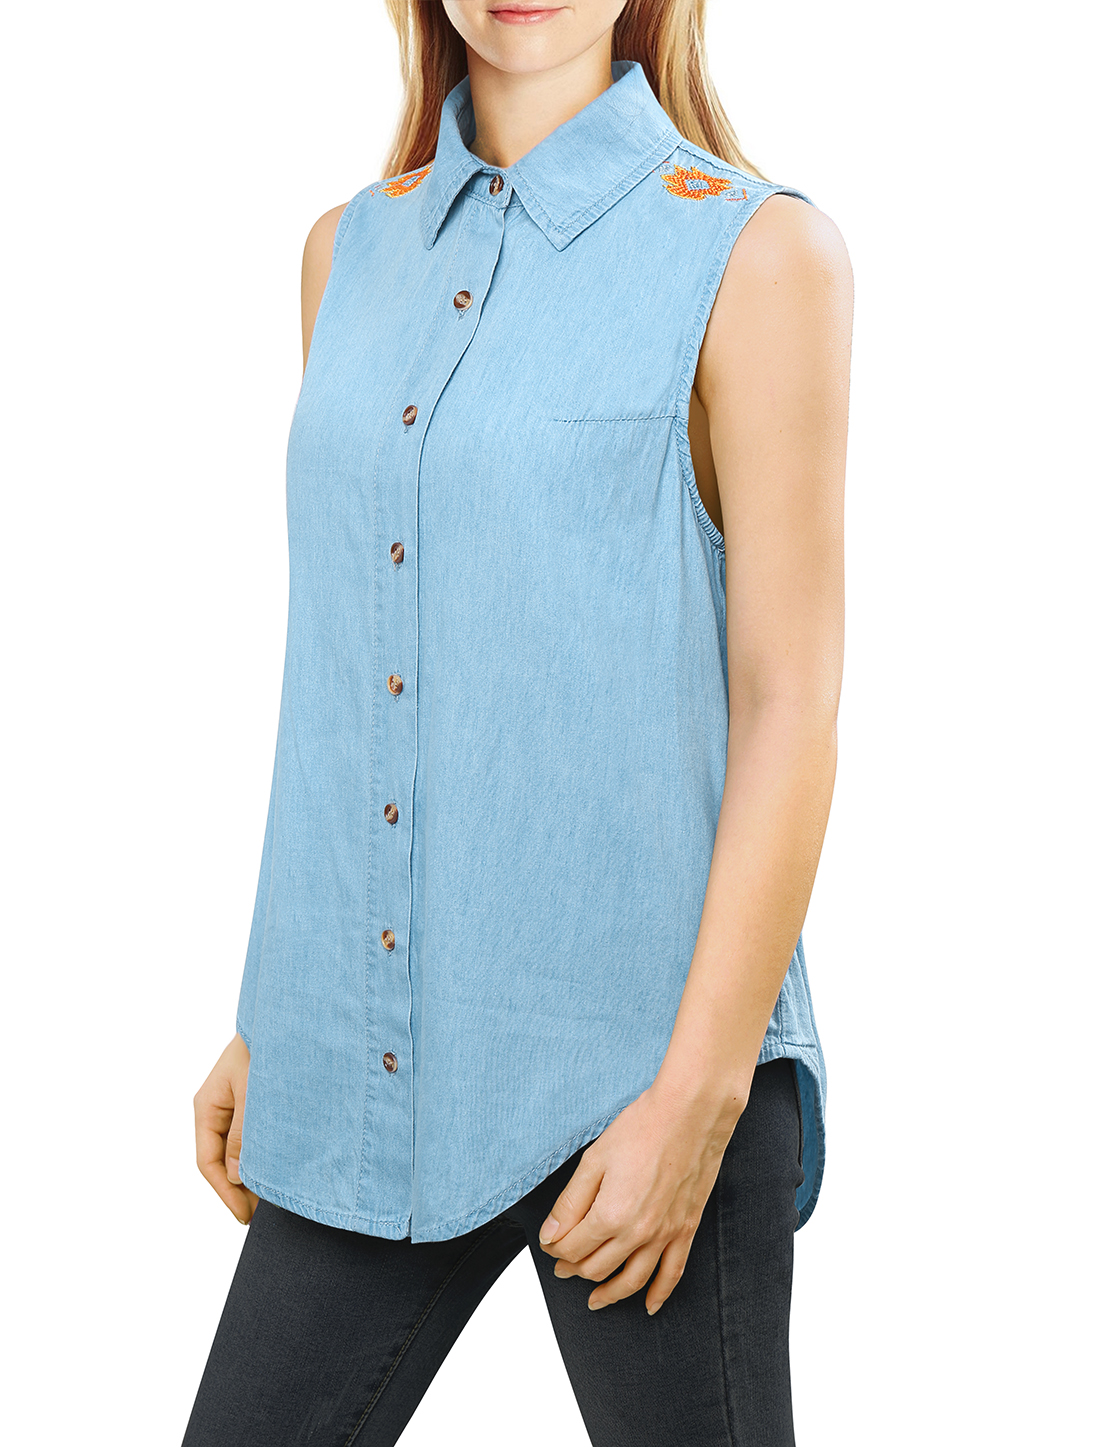 Women Embroidered Sleeveless Denim Shirt w Cut Out Back Blue L